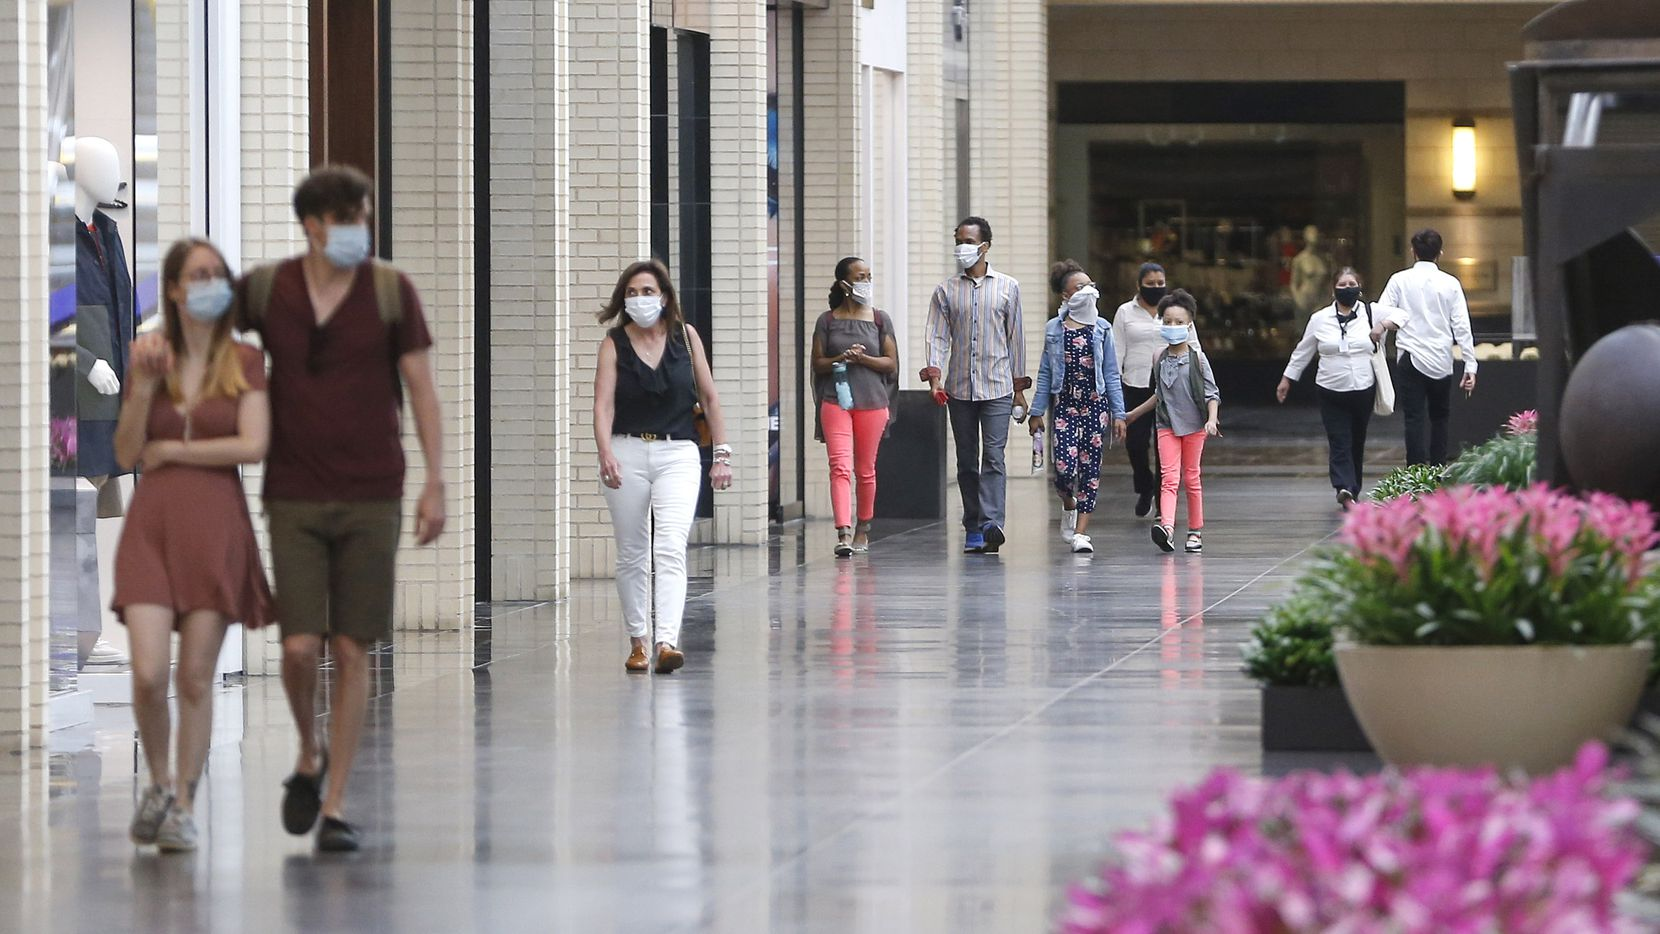 Shoppers walk through NorthPark Center mall on Friday, May 1, 2020 in Dallas.